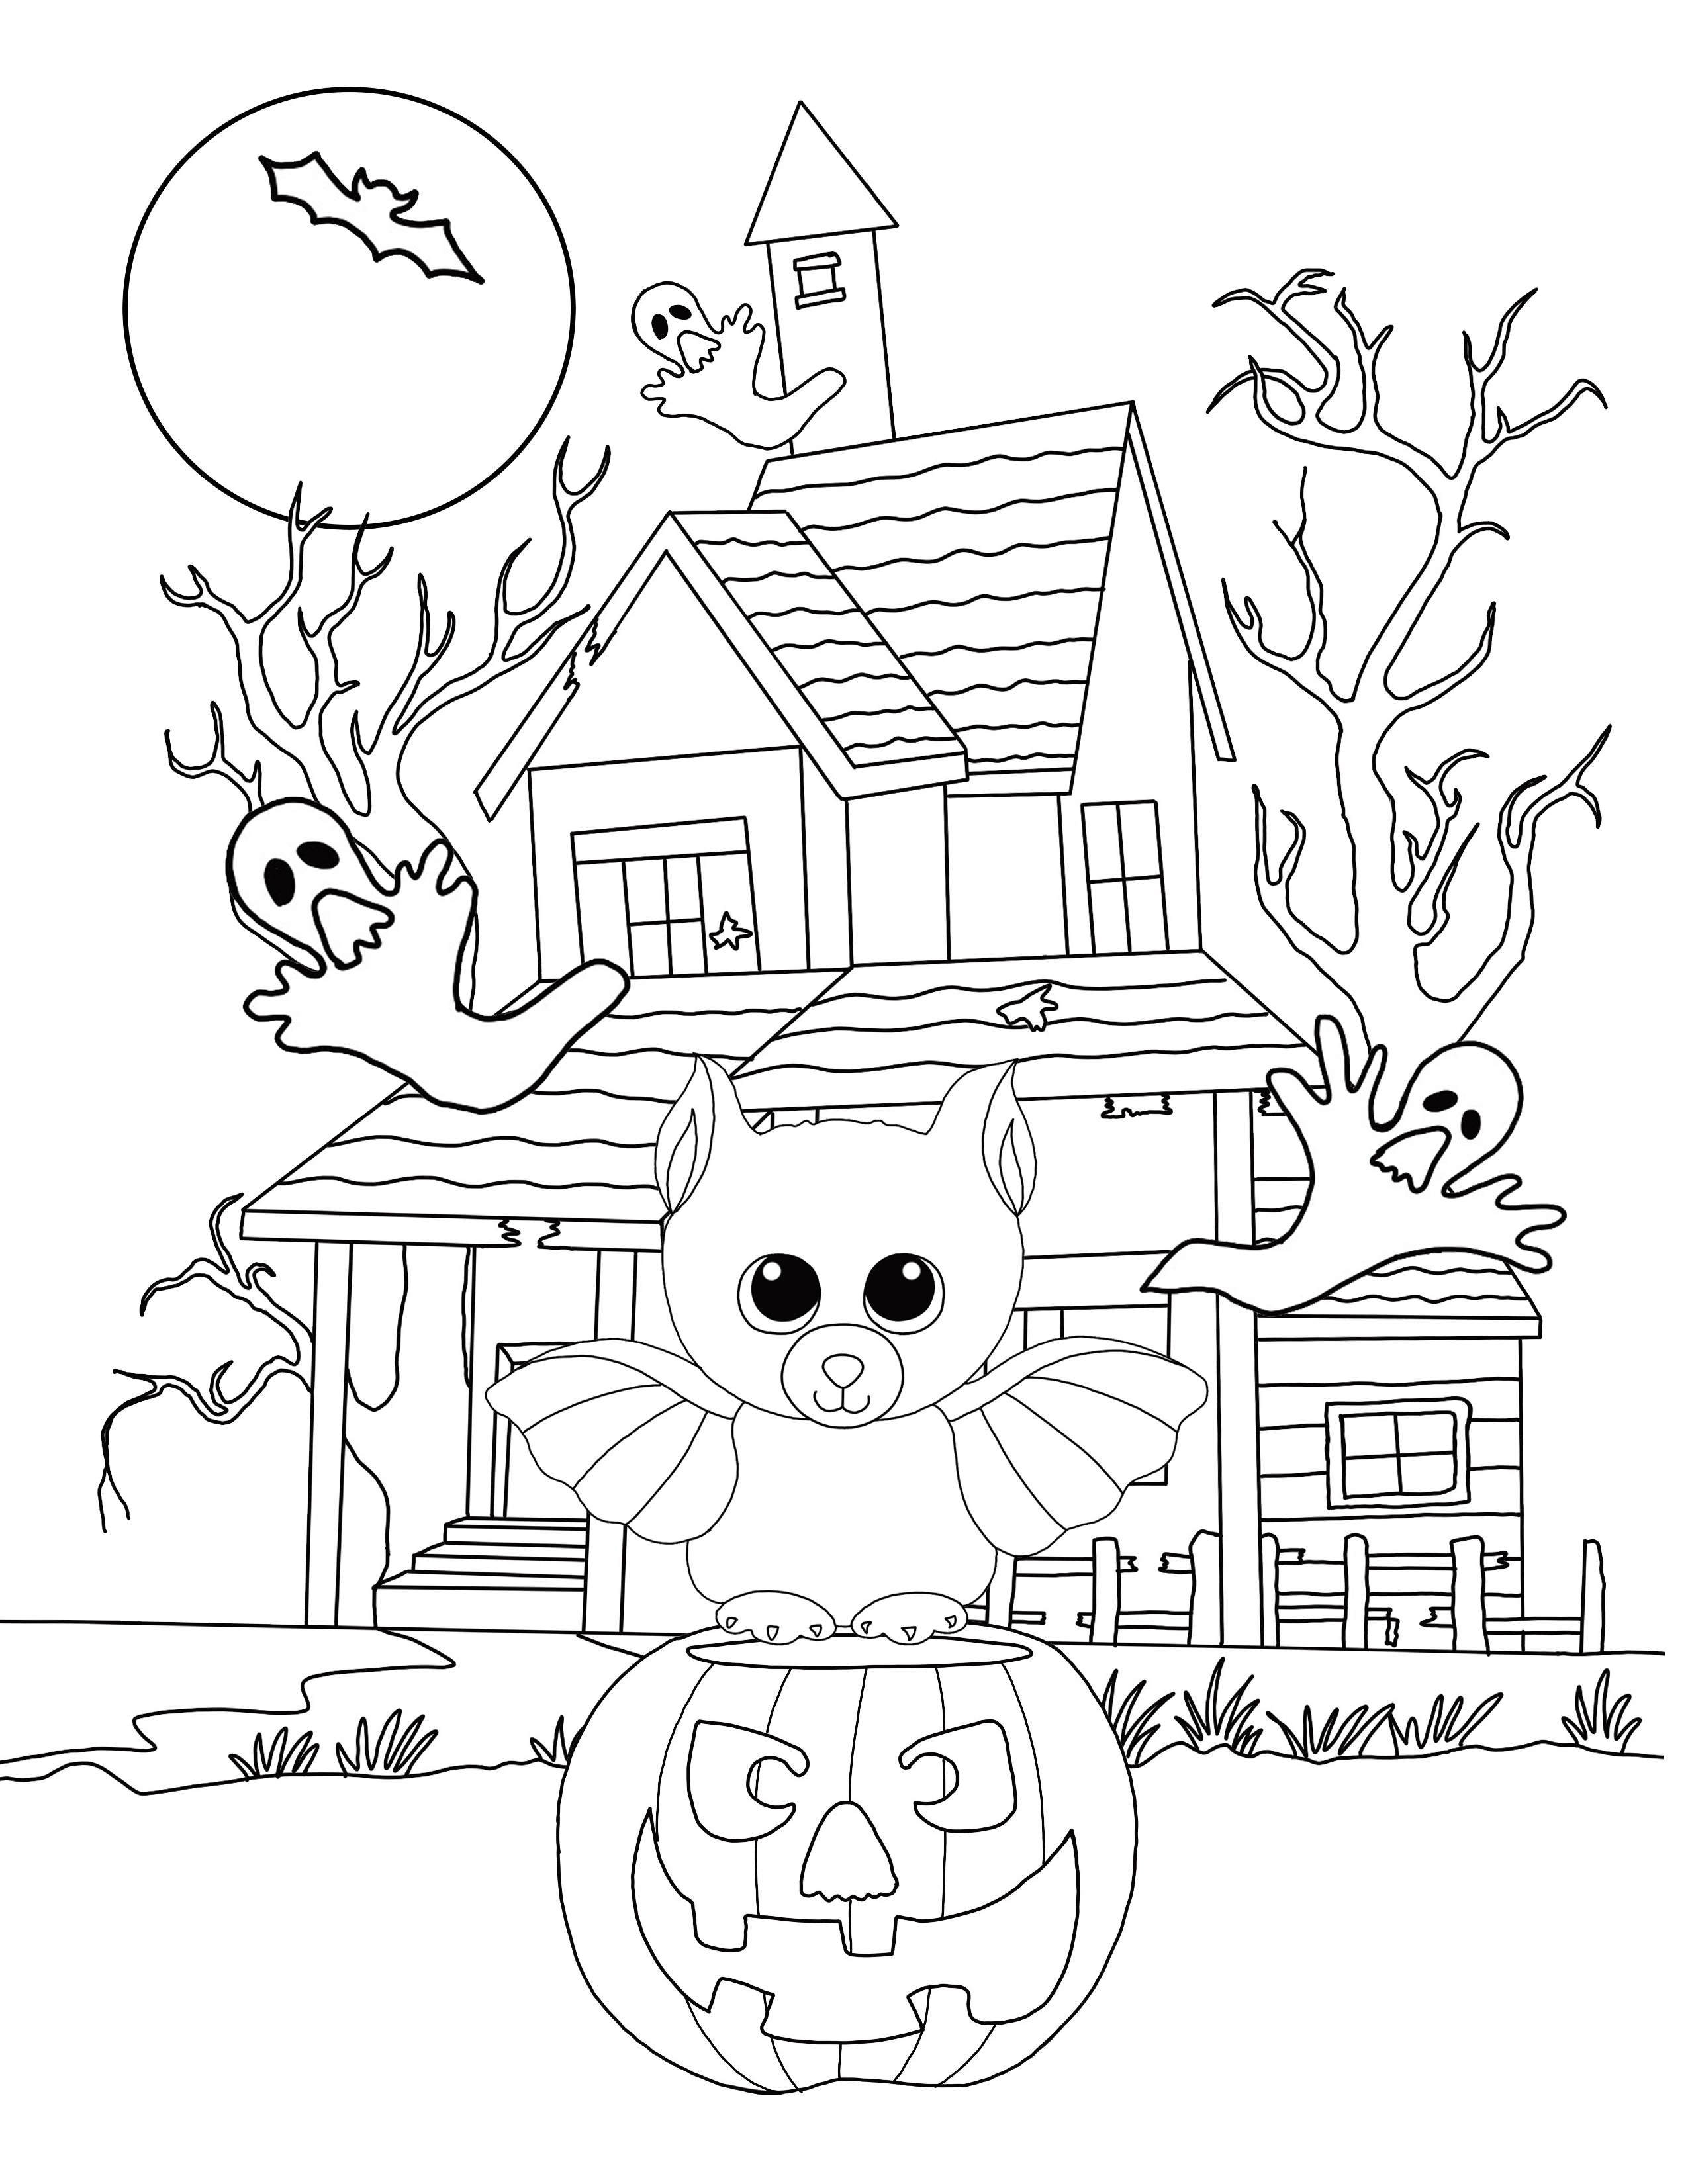 Halloween Coloring Page - Beanie Boo Fan Club